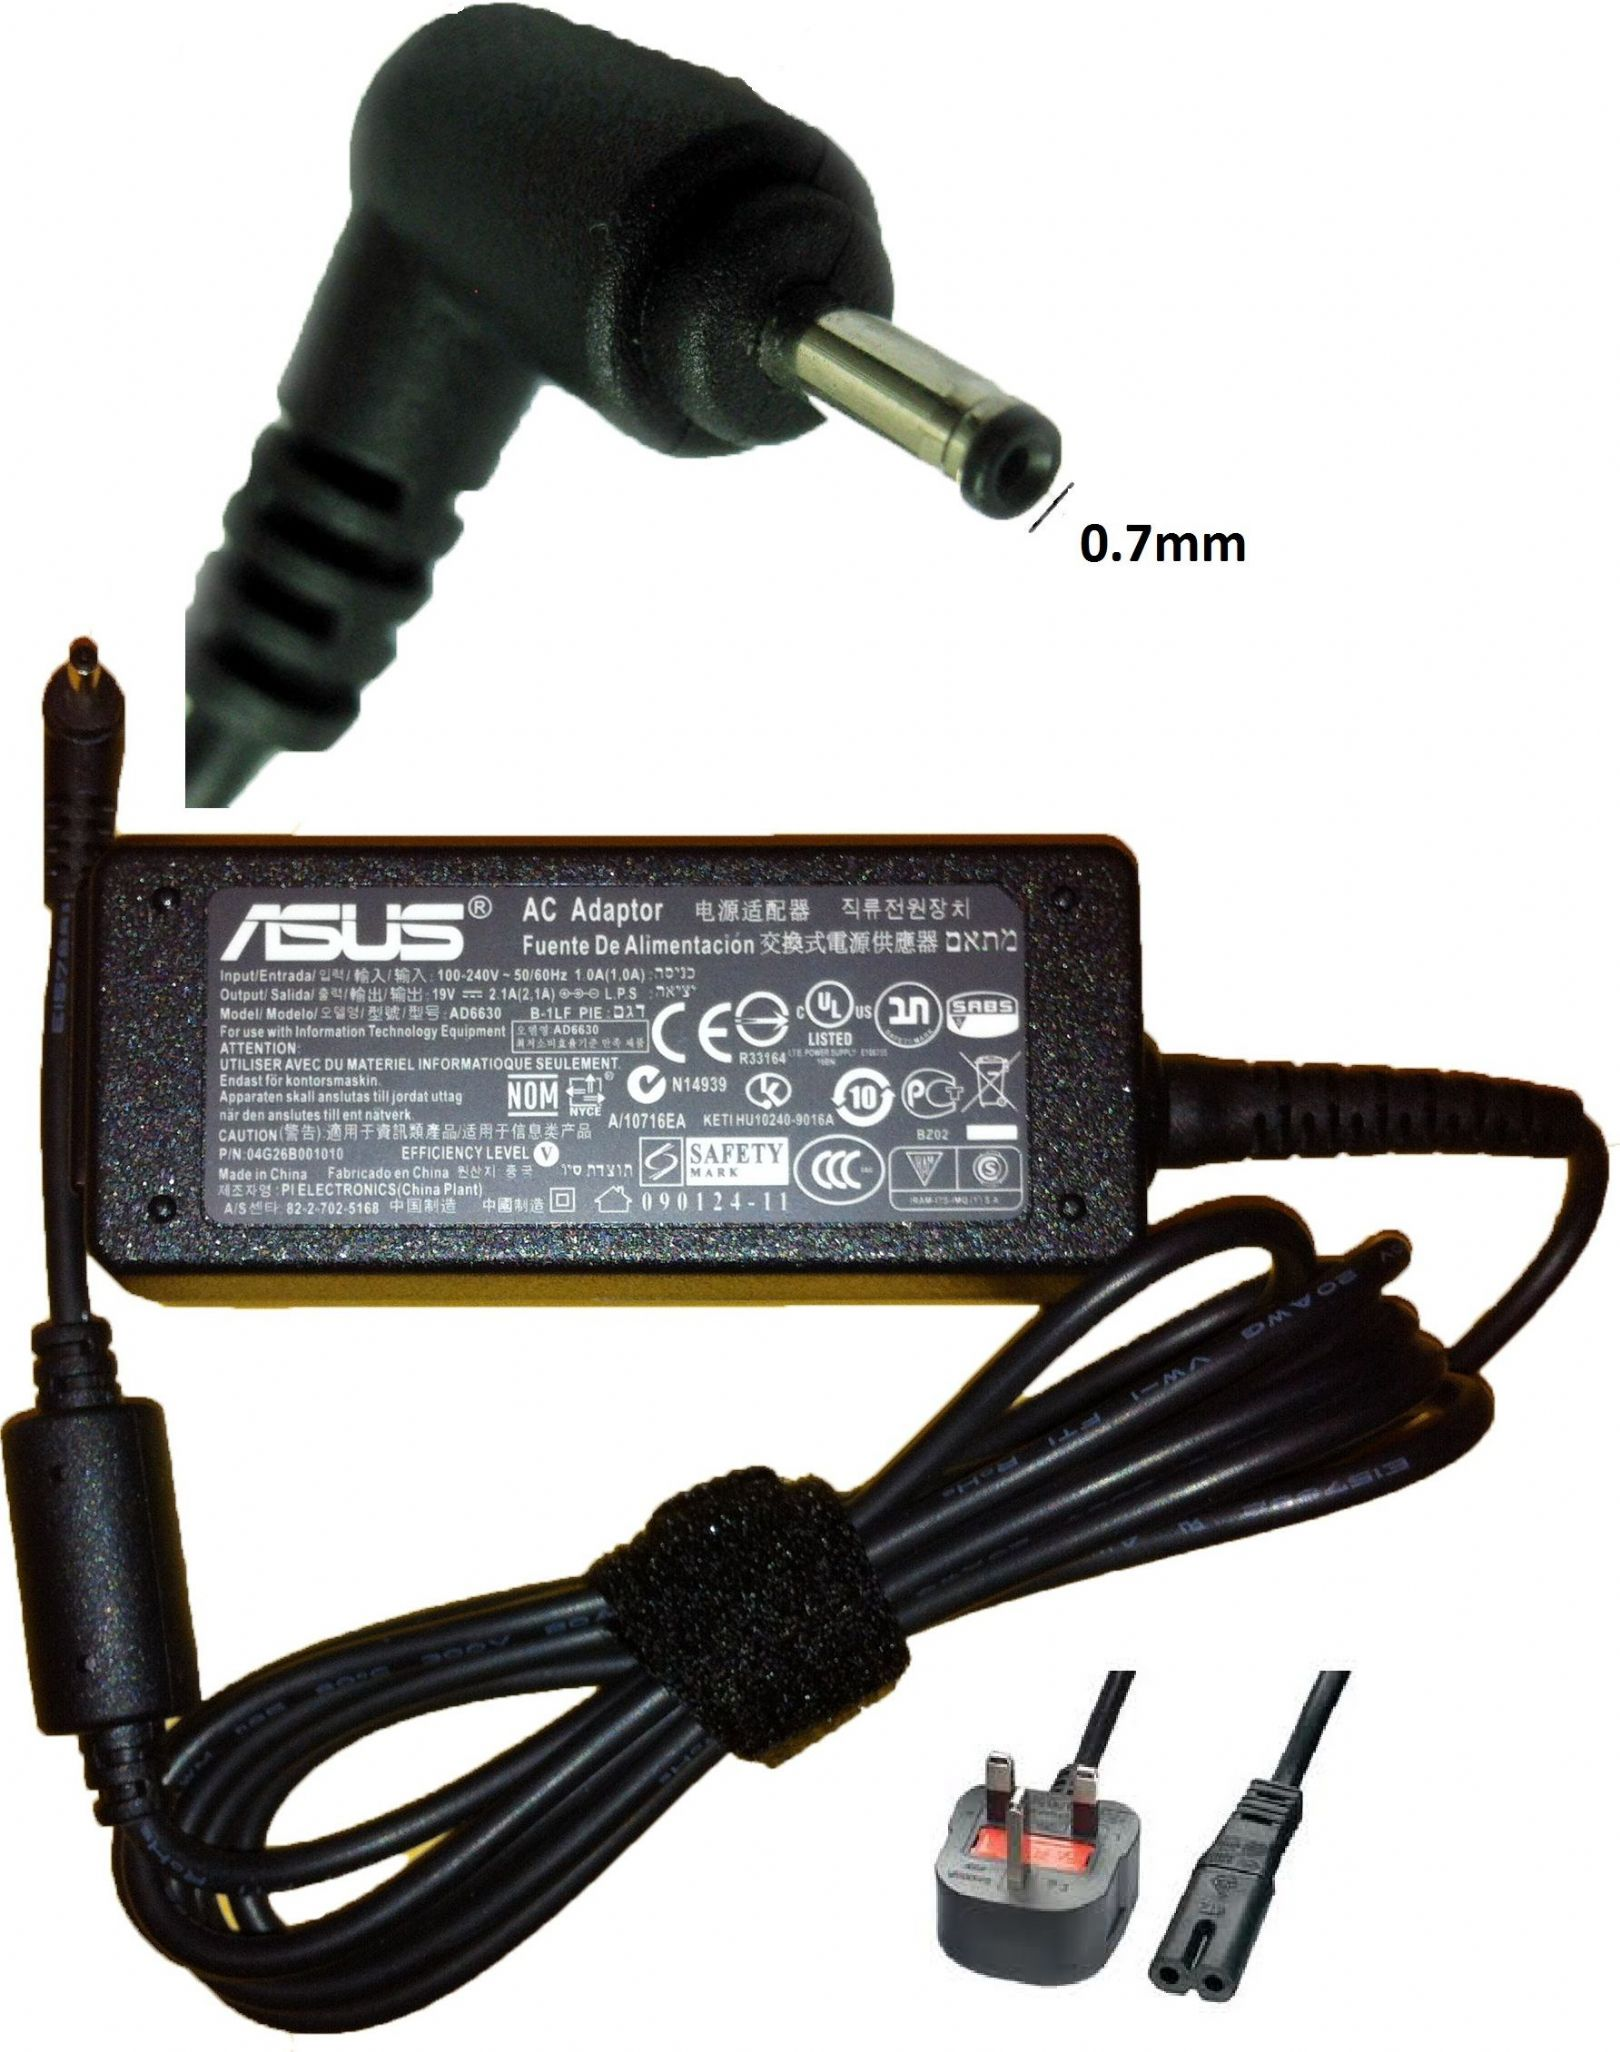 Asus 1015Cx Eee Pc Charger